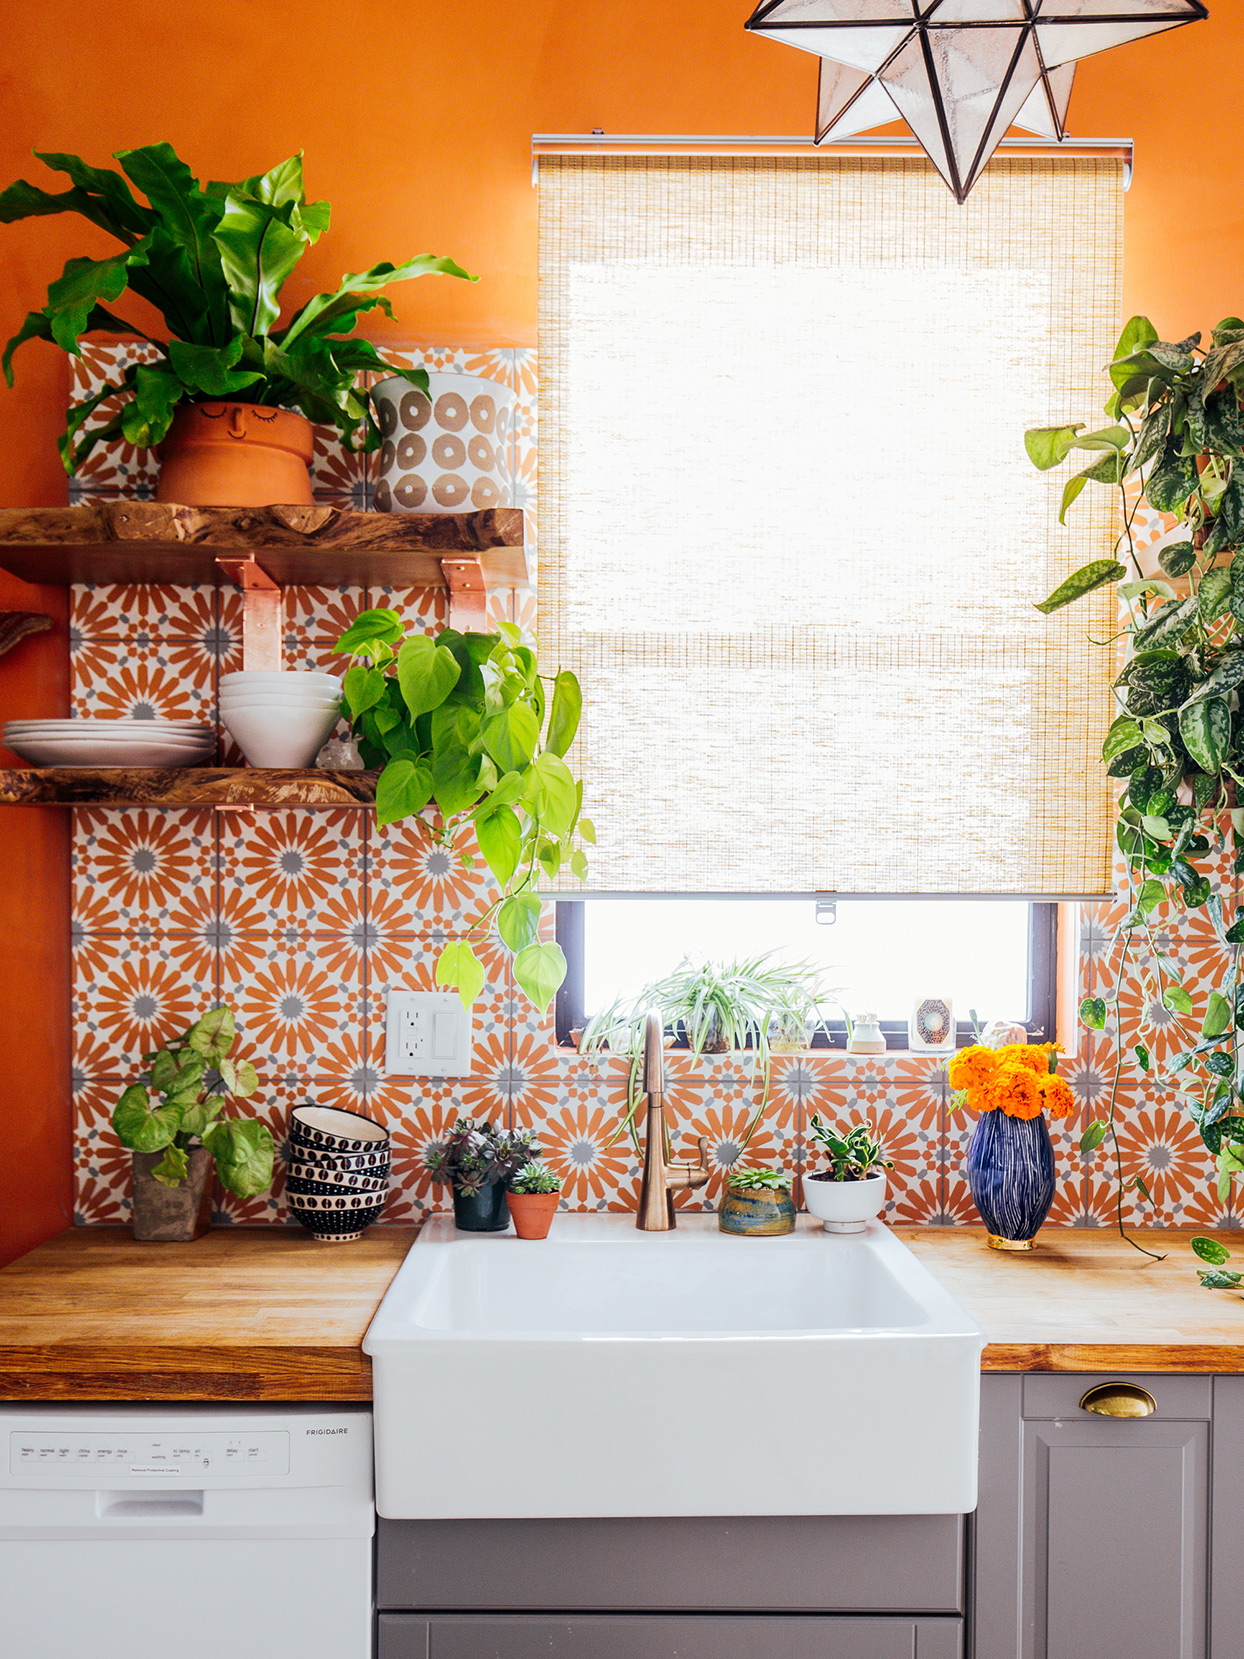 orange geometric floral backsplash tiles in bright kitchen